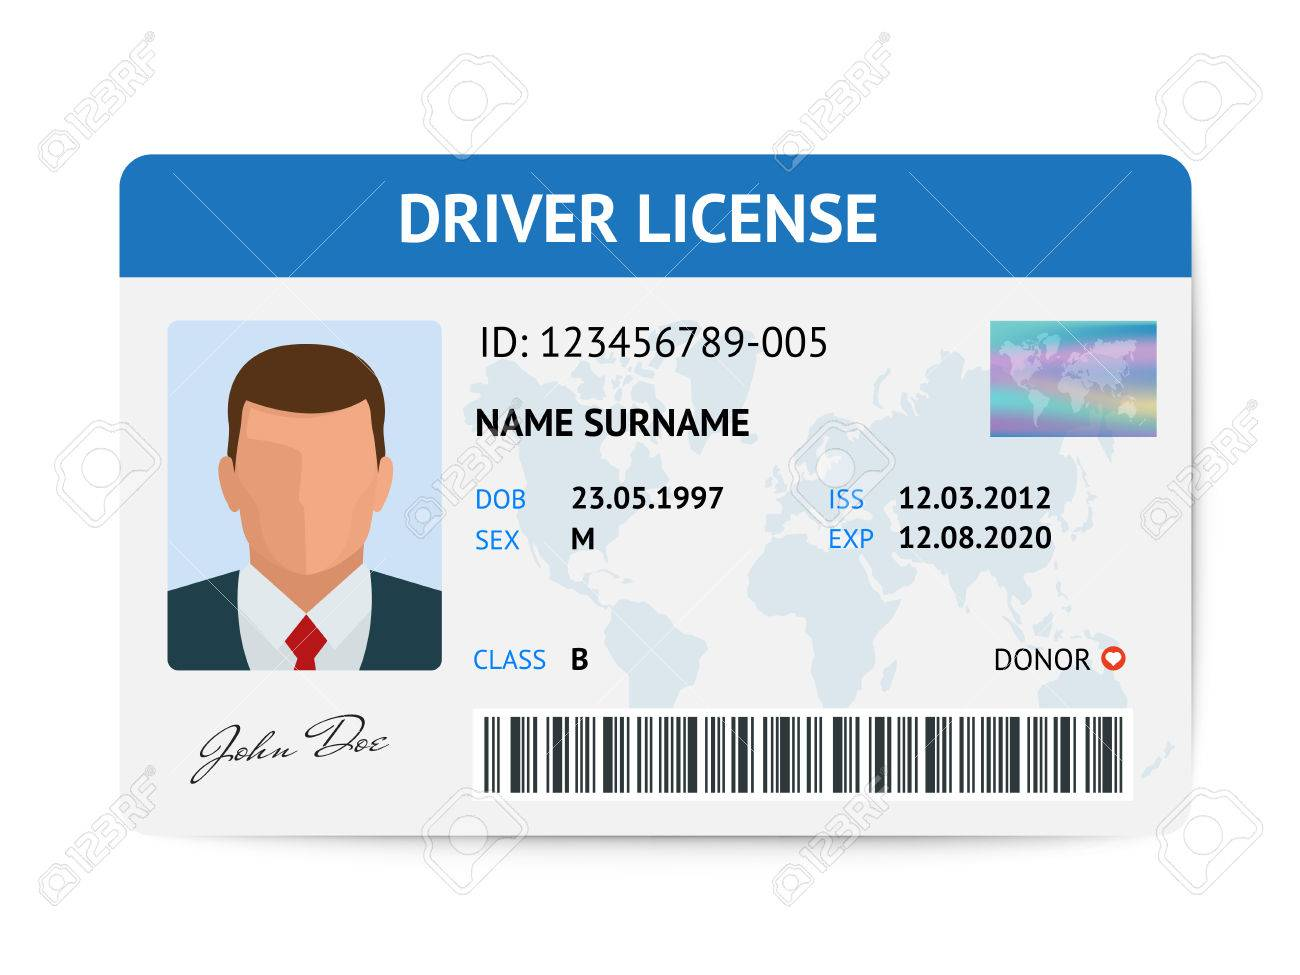 Front Licence Image